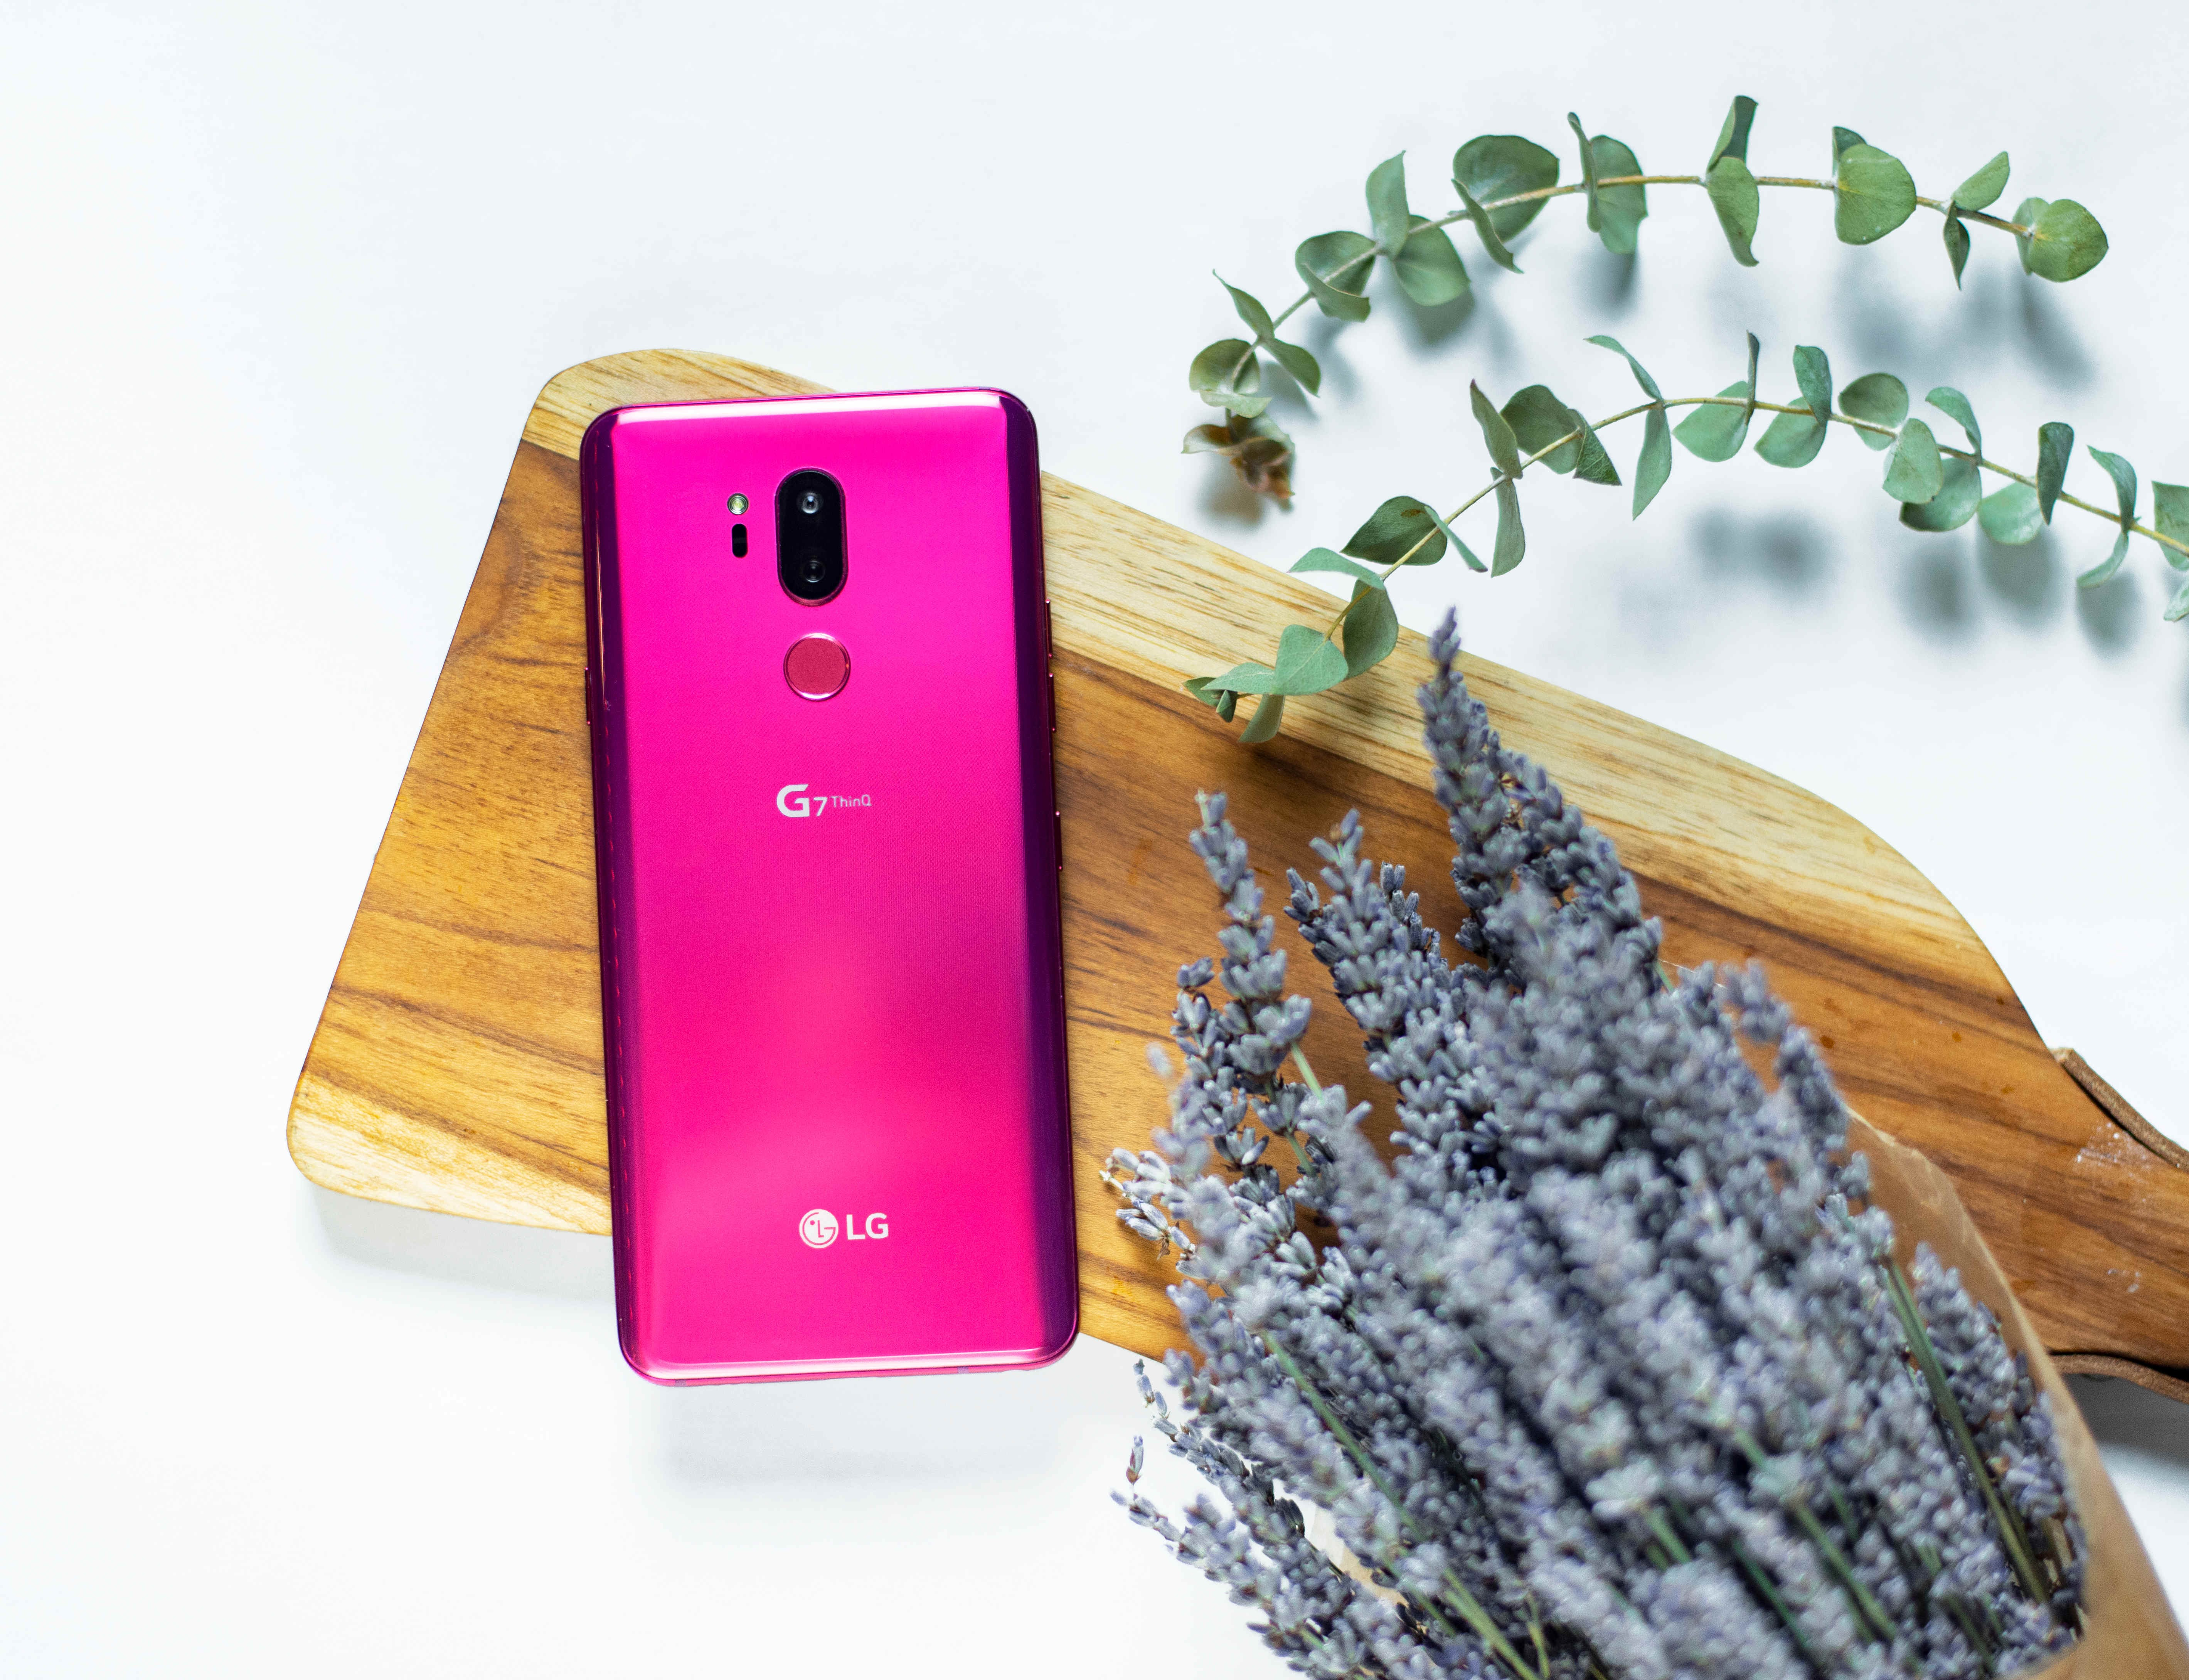 The LG G7 ThinQ in Raspberry Rose face down on a cutting board